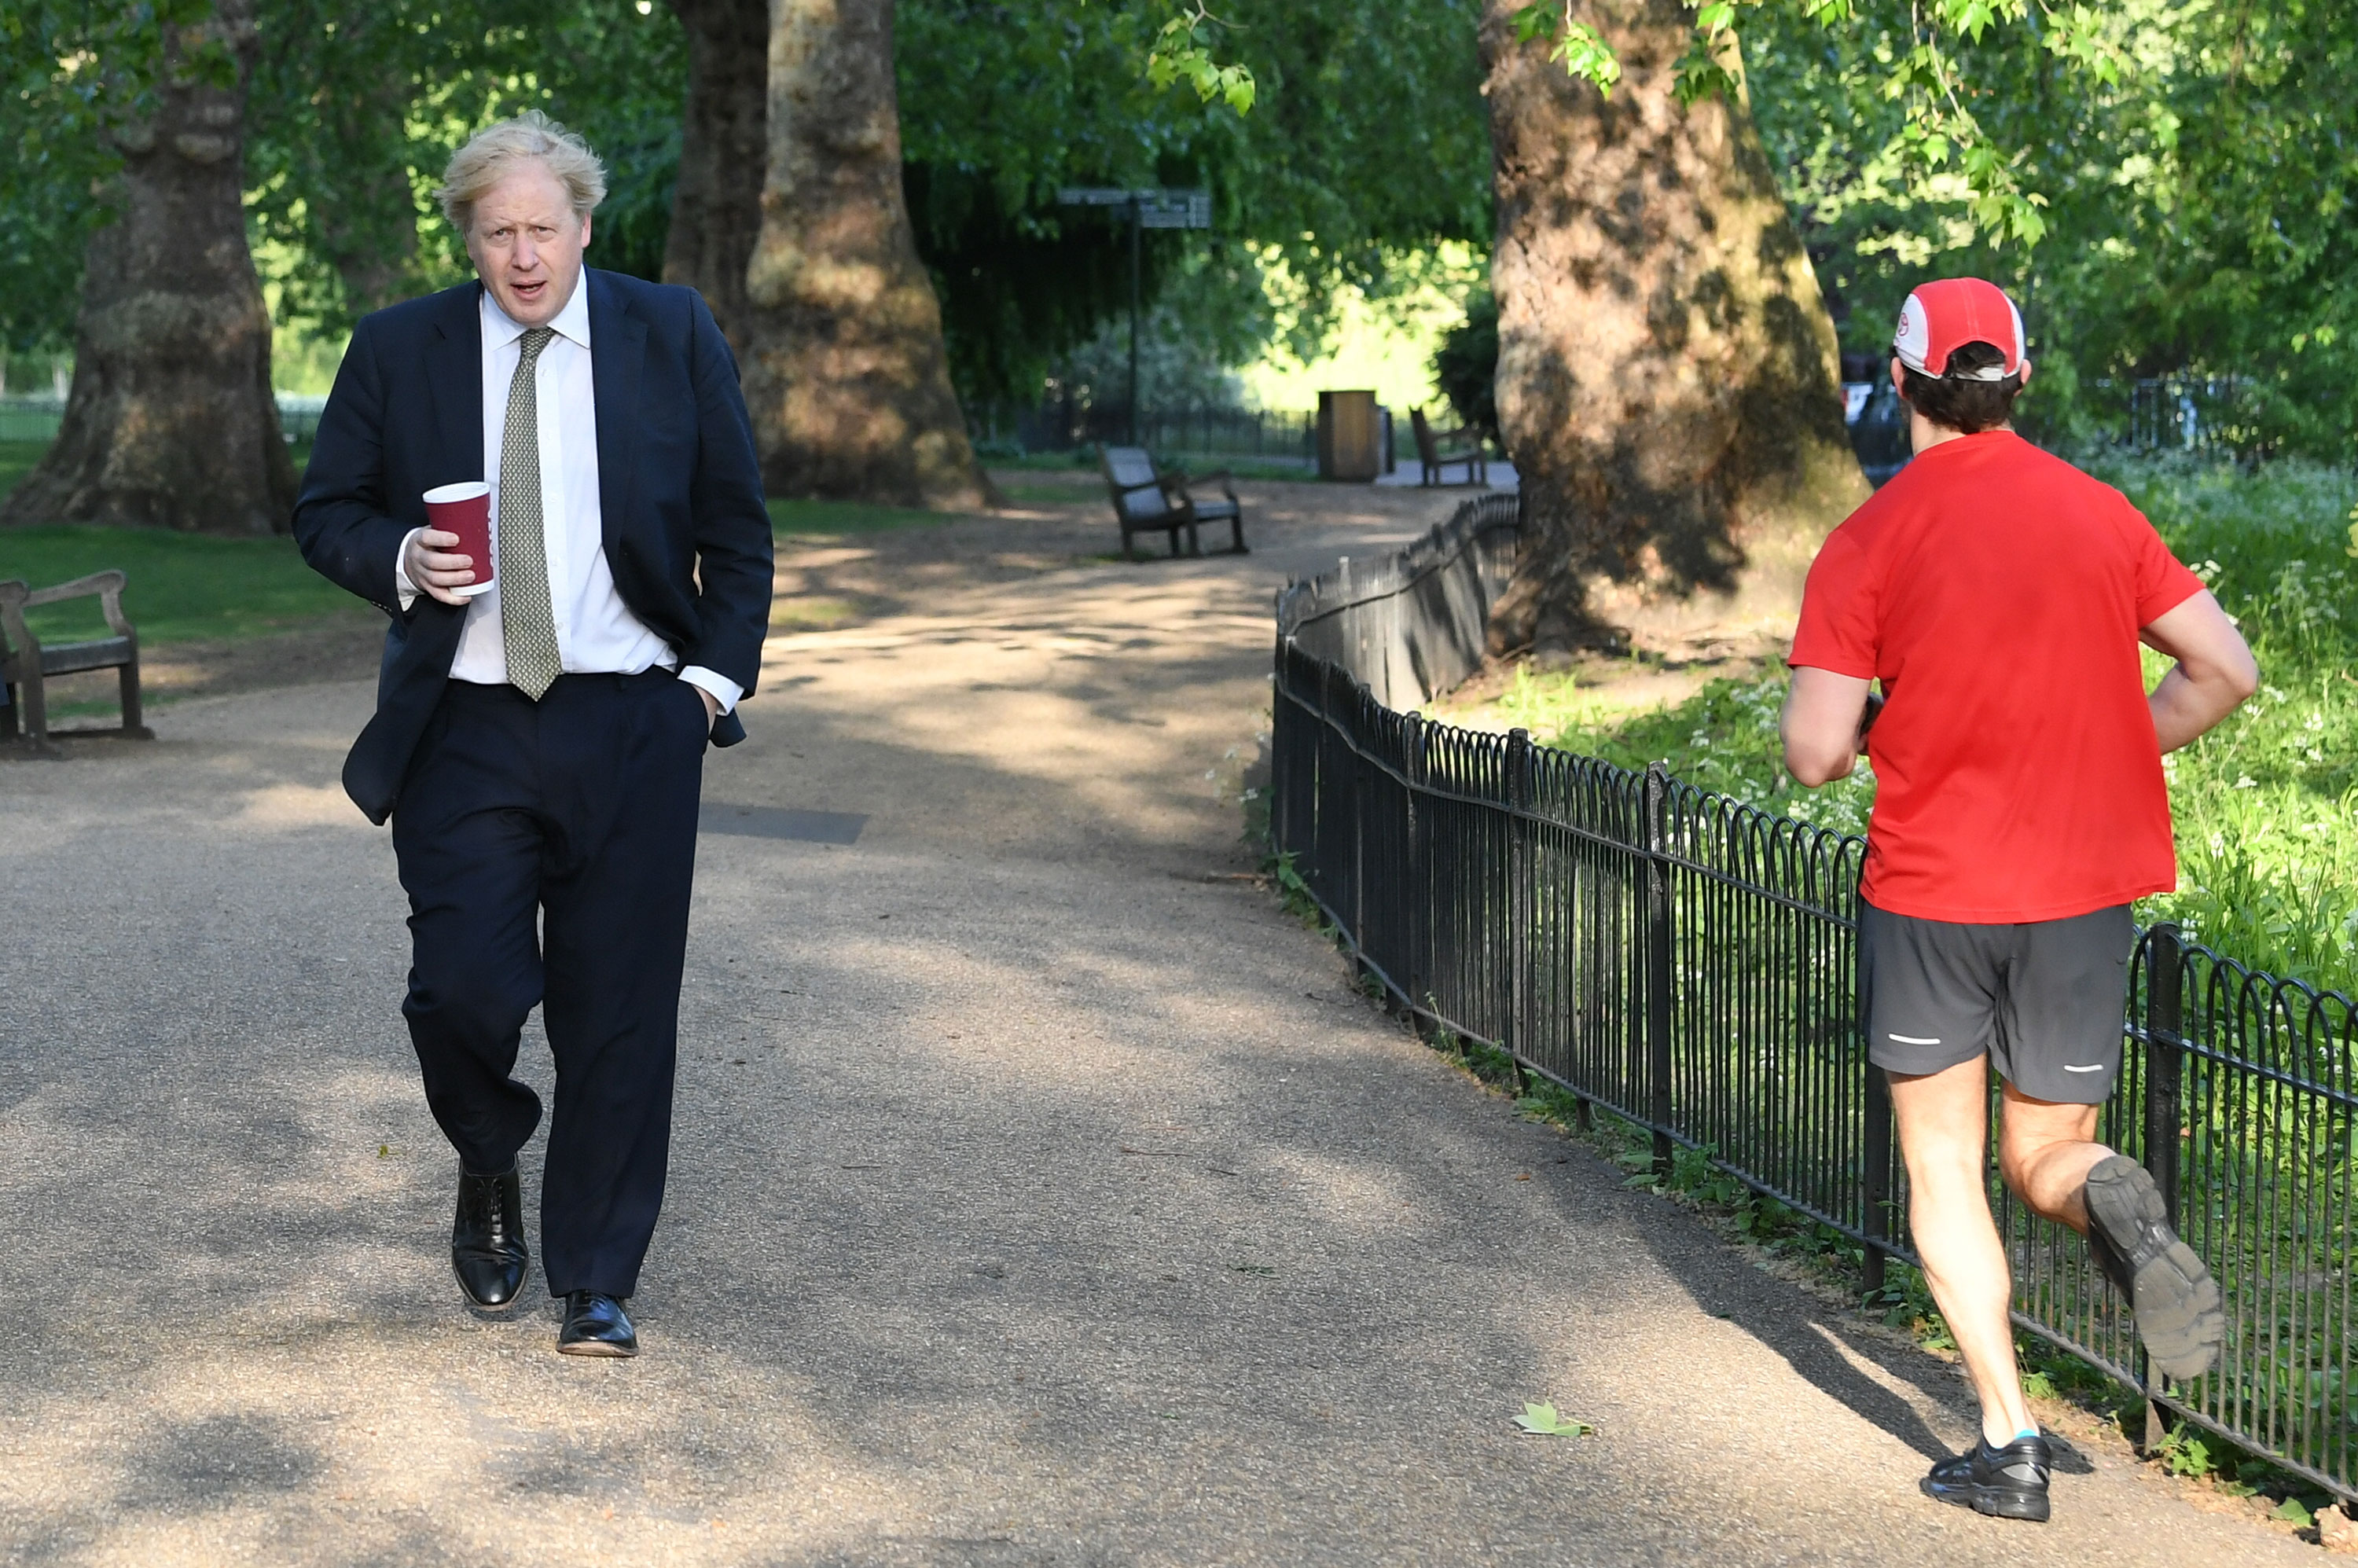 Prime Minister Boris Johnson takes a morning walk in St. James's Park in London before returning to Downing Street on May 6.